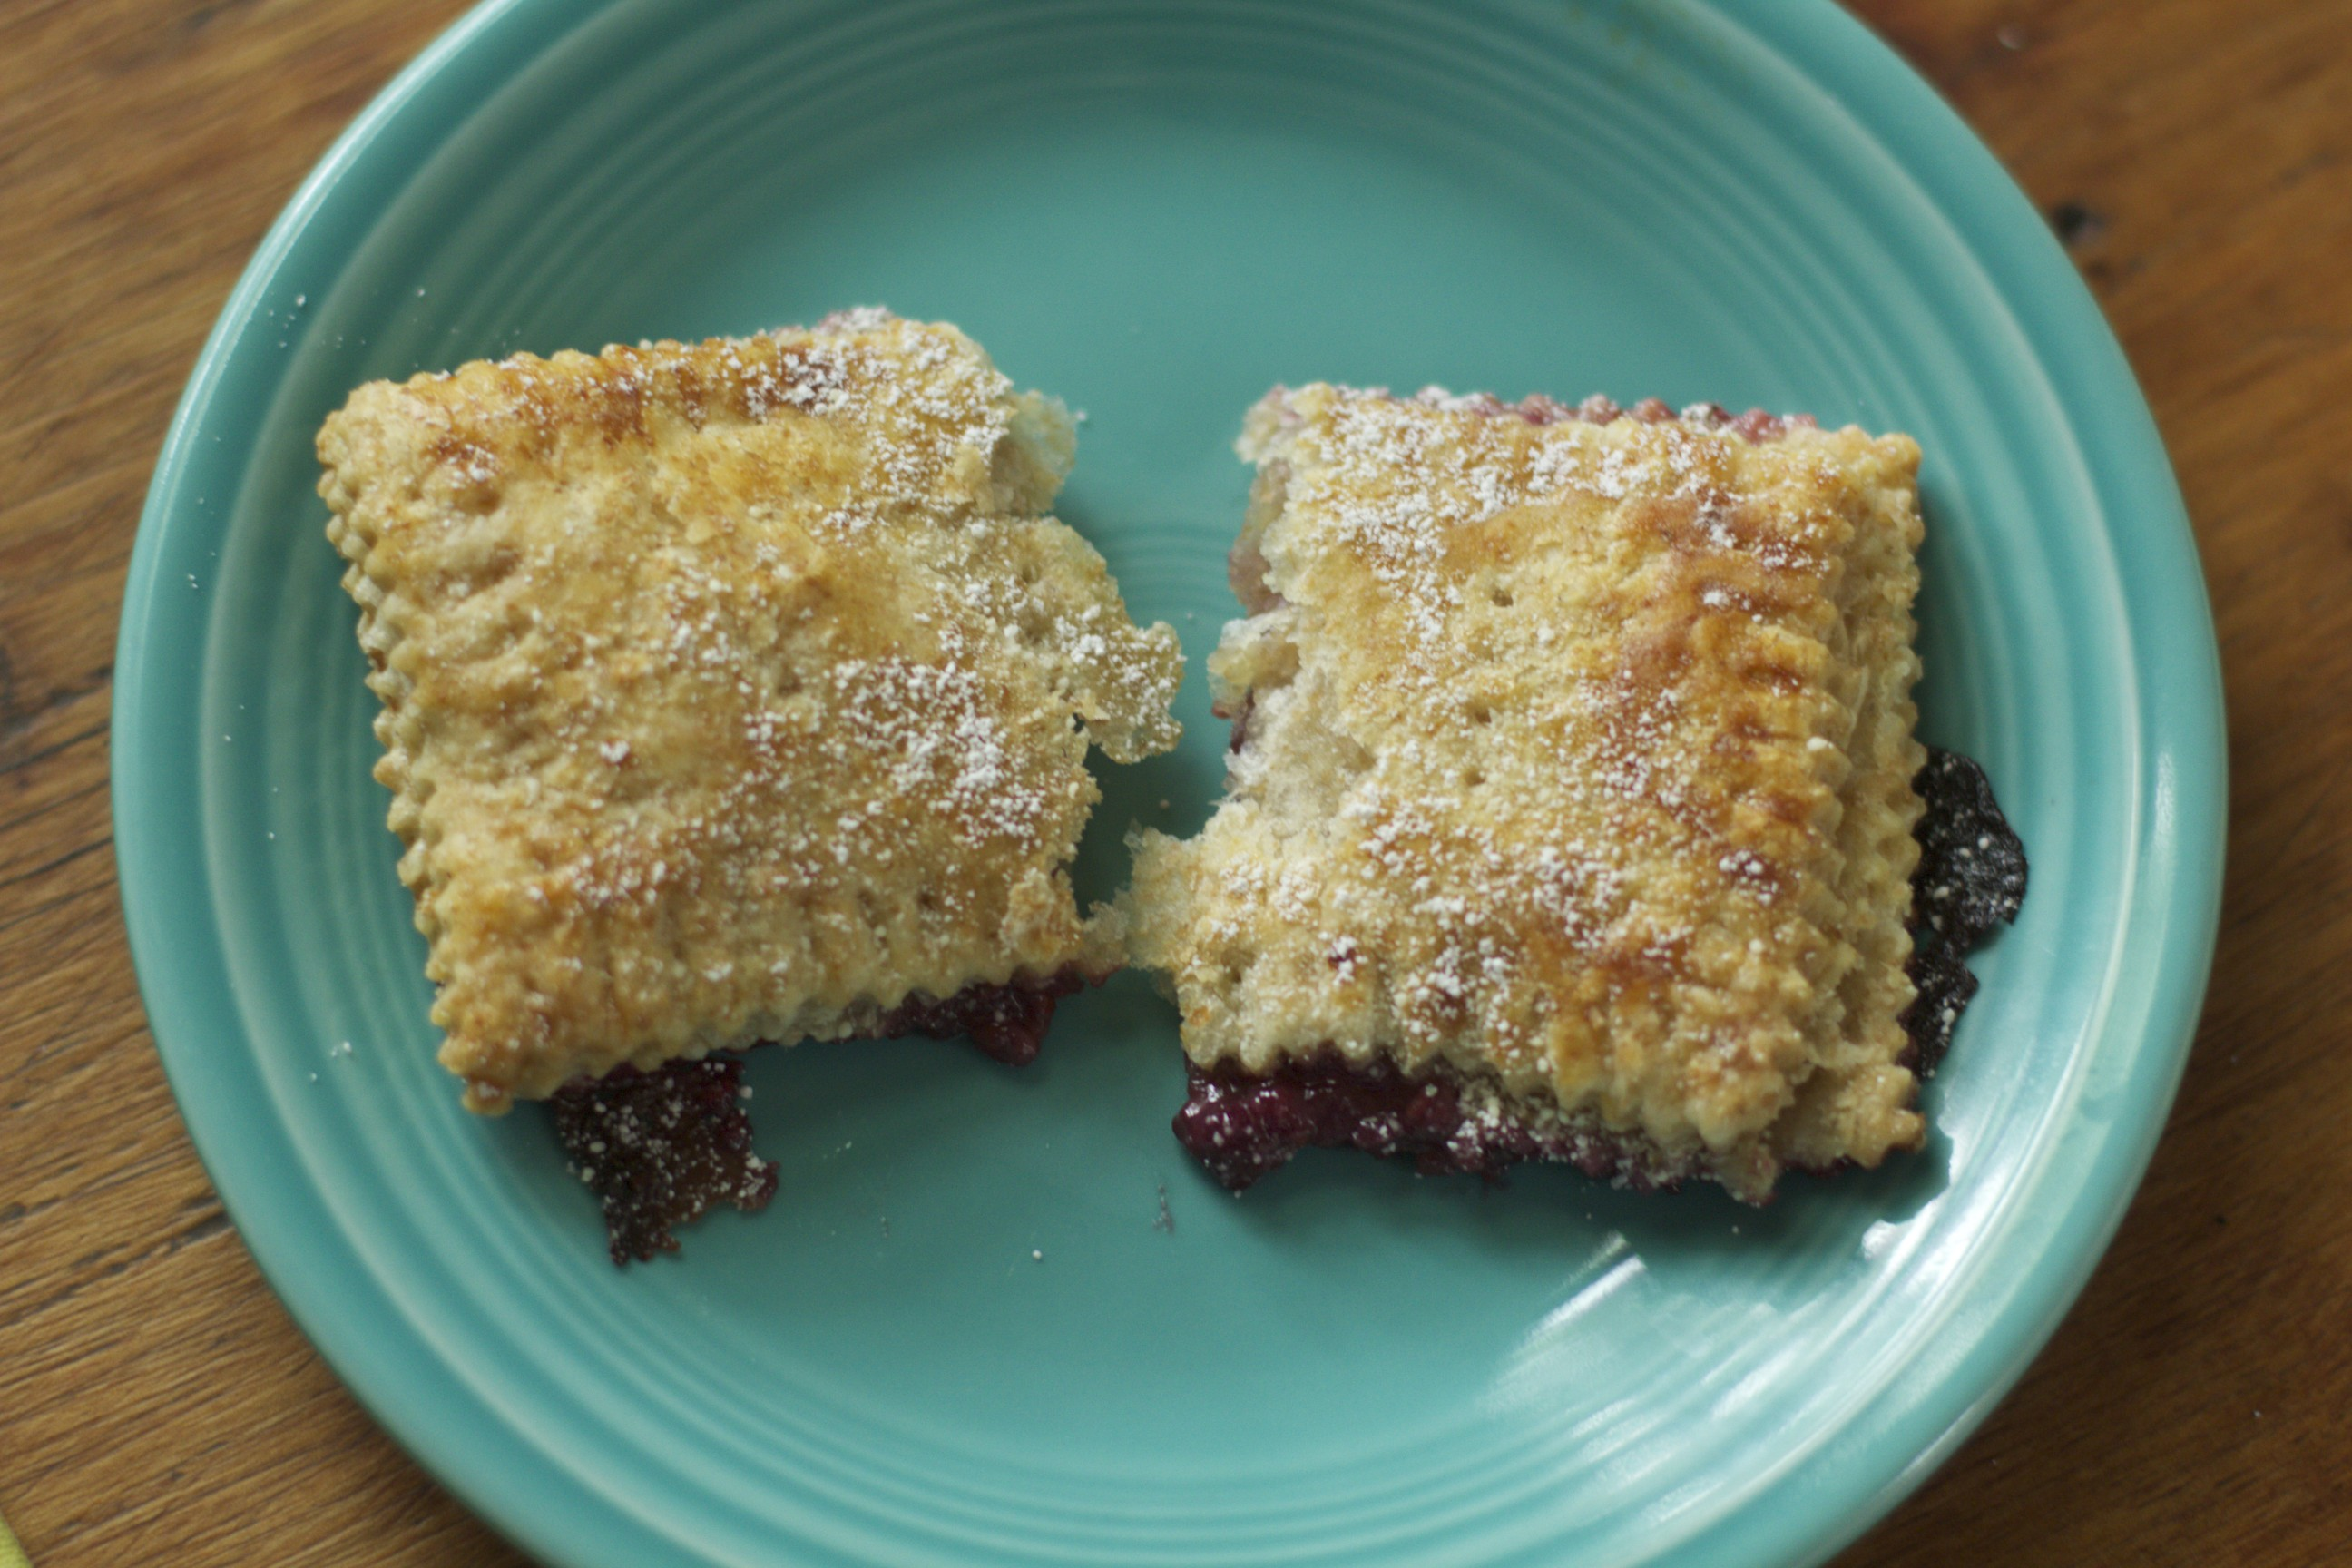 raspberry cream cheese toaster pastry